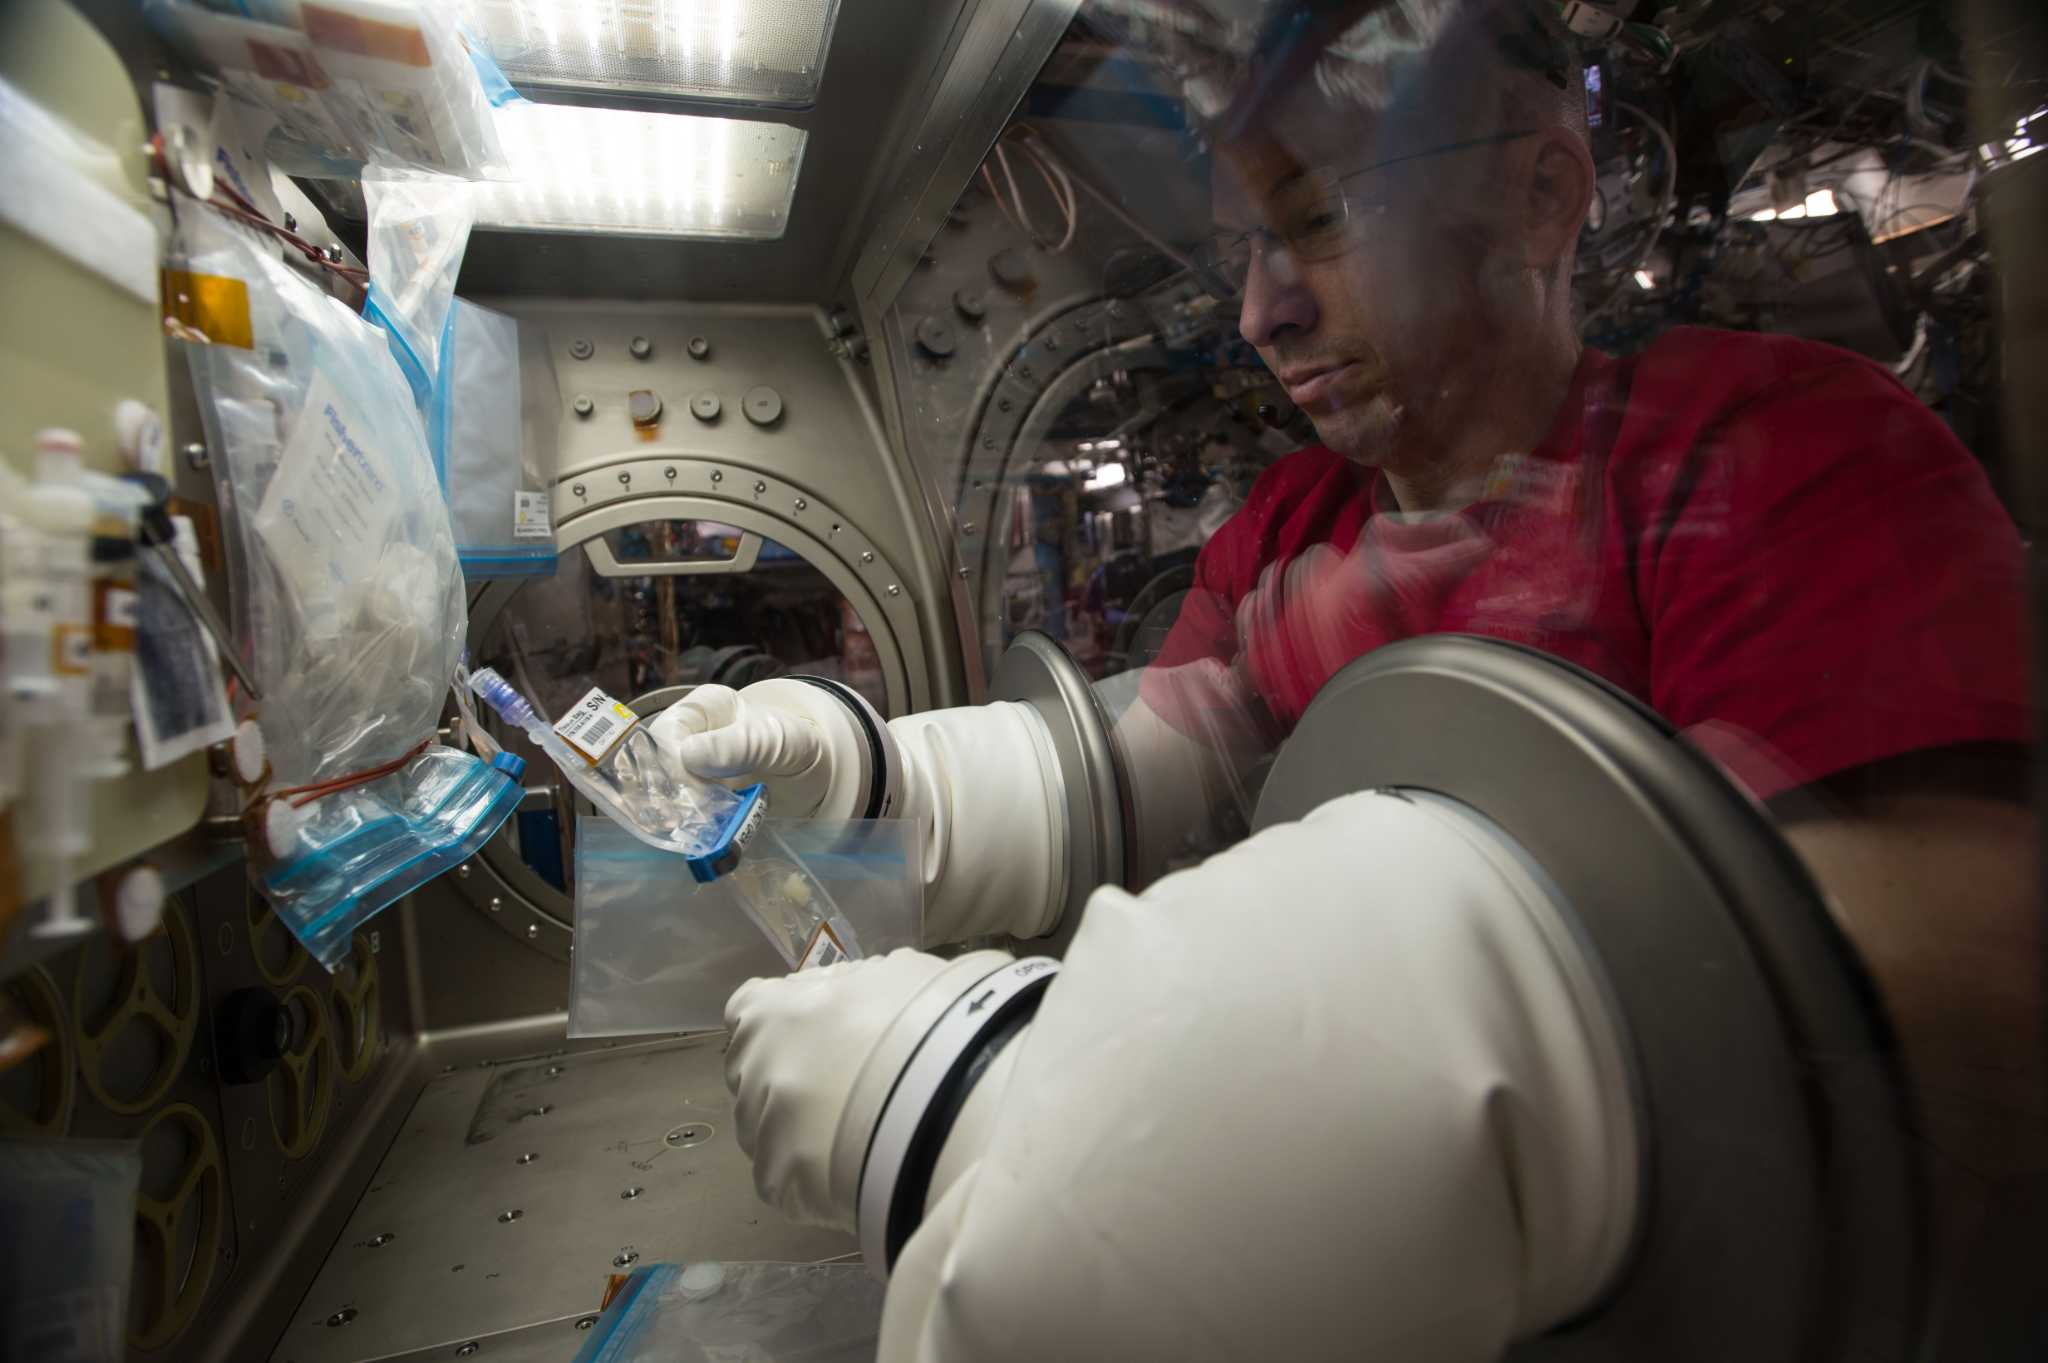 Research shows lungs heal more slowly in space, a problem NASA must fix before trip to Mars